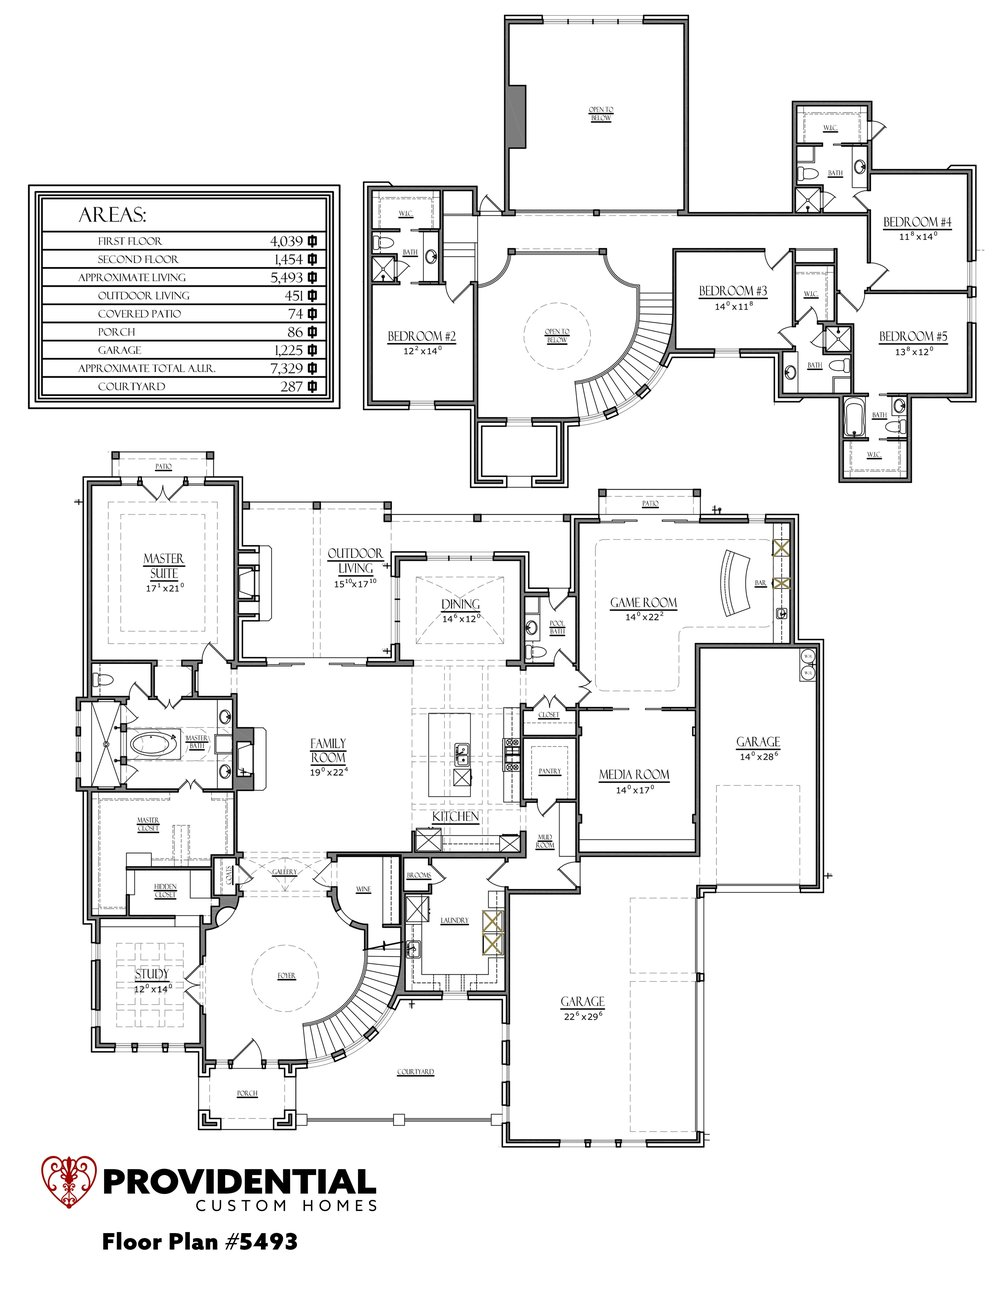 The FLOOR PLAN #5493.jpg